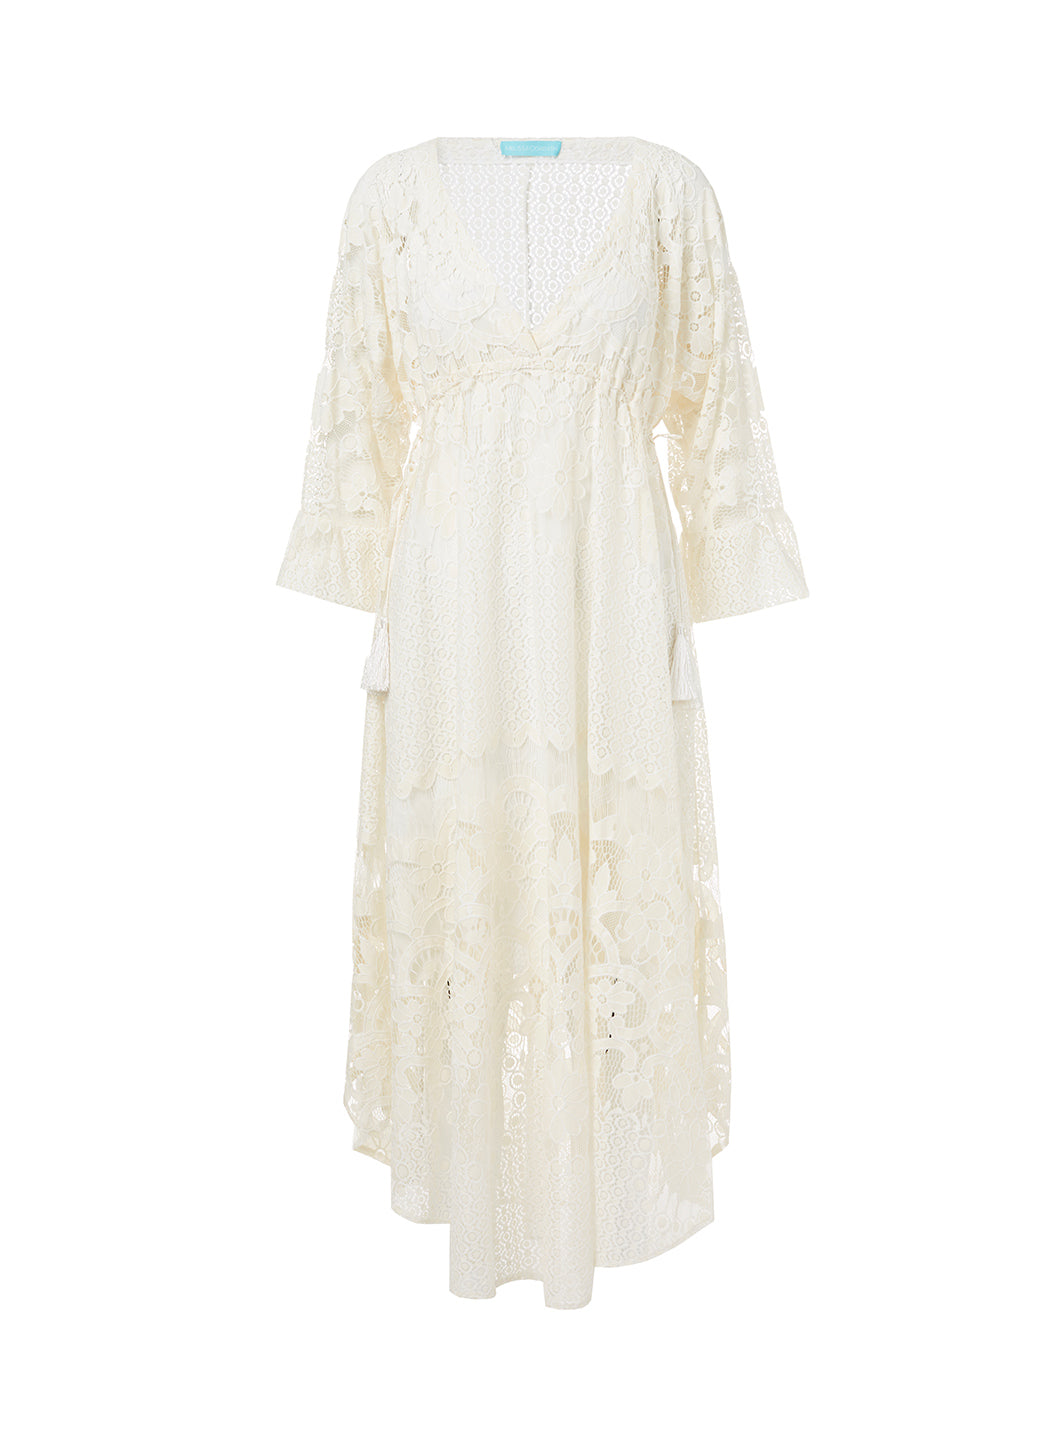 Melissa Cream Lace Tie-Side Midi Dress - Melissa Odabash Beachwear